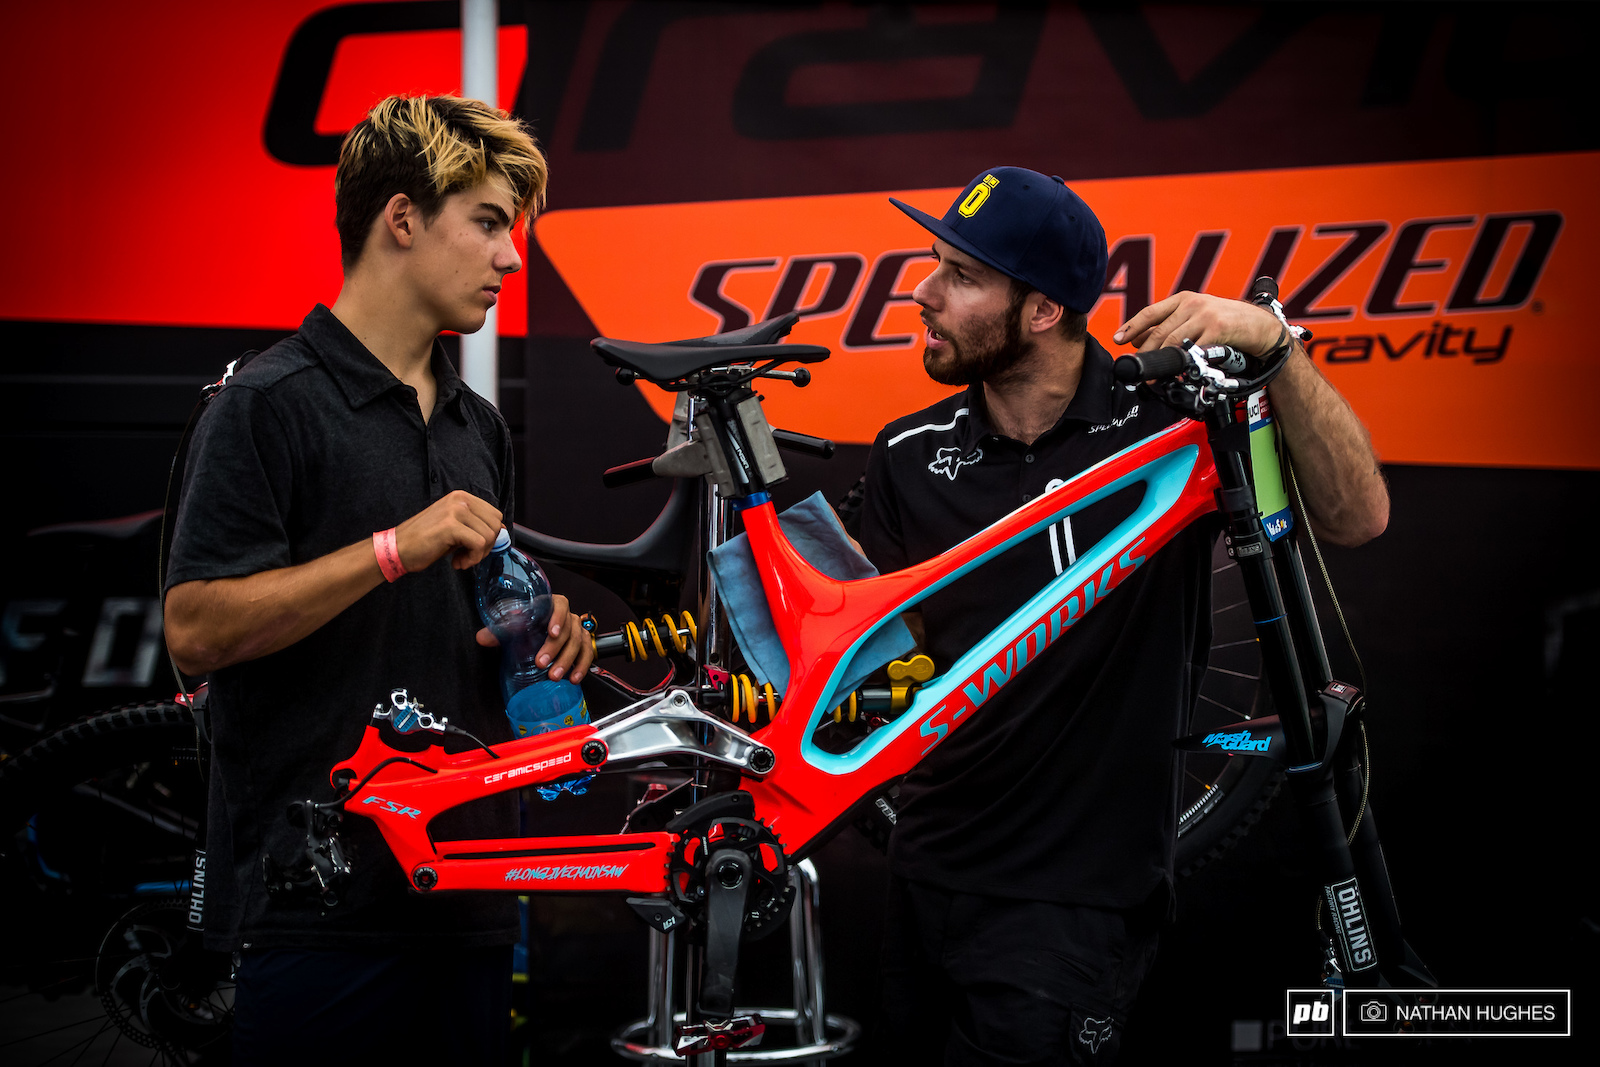 Finn Iles and Kevin Joly talk about the sticking points up on the hill.